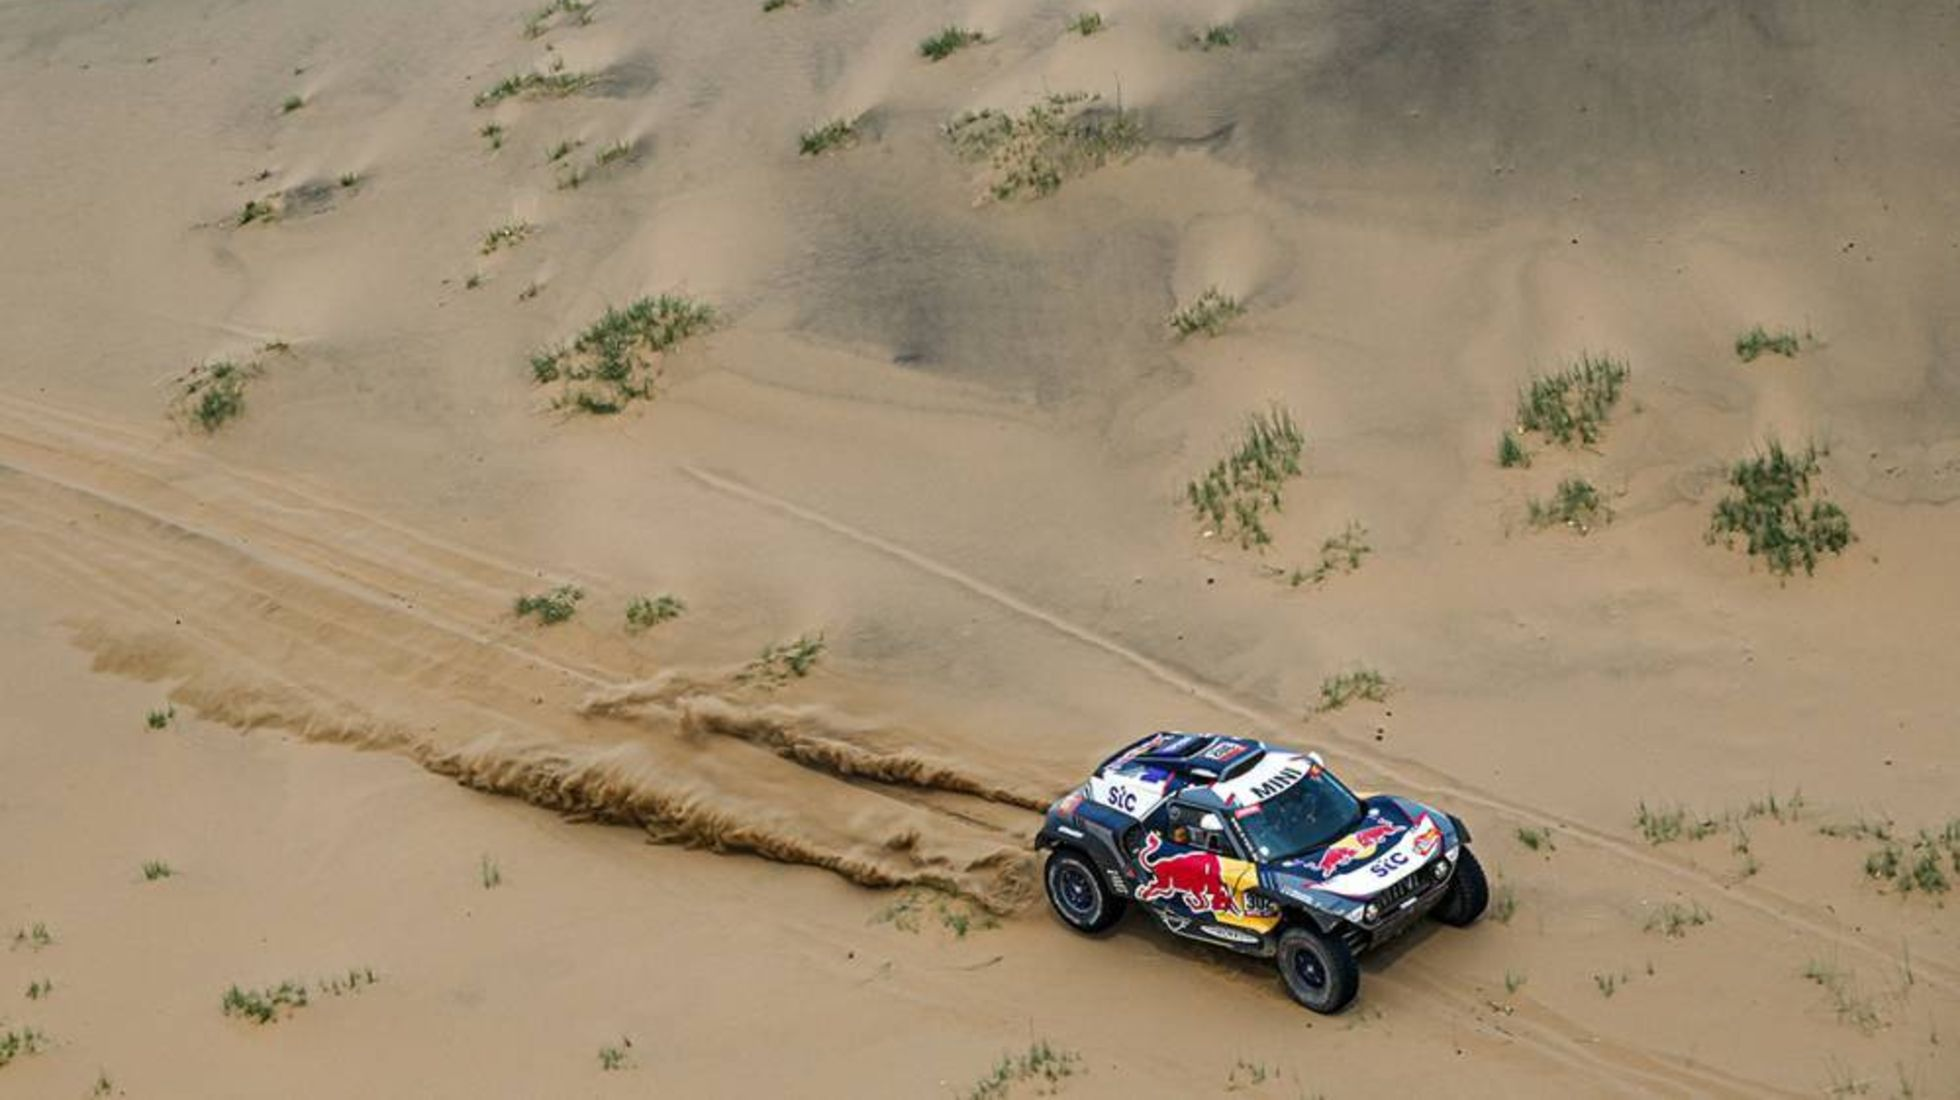 Dakar Review after Stage 11: Another Stage win for Al-Attiyah but Peterhansel still leads overall.